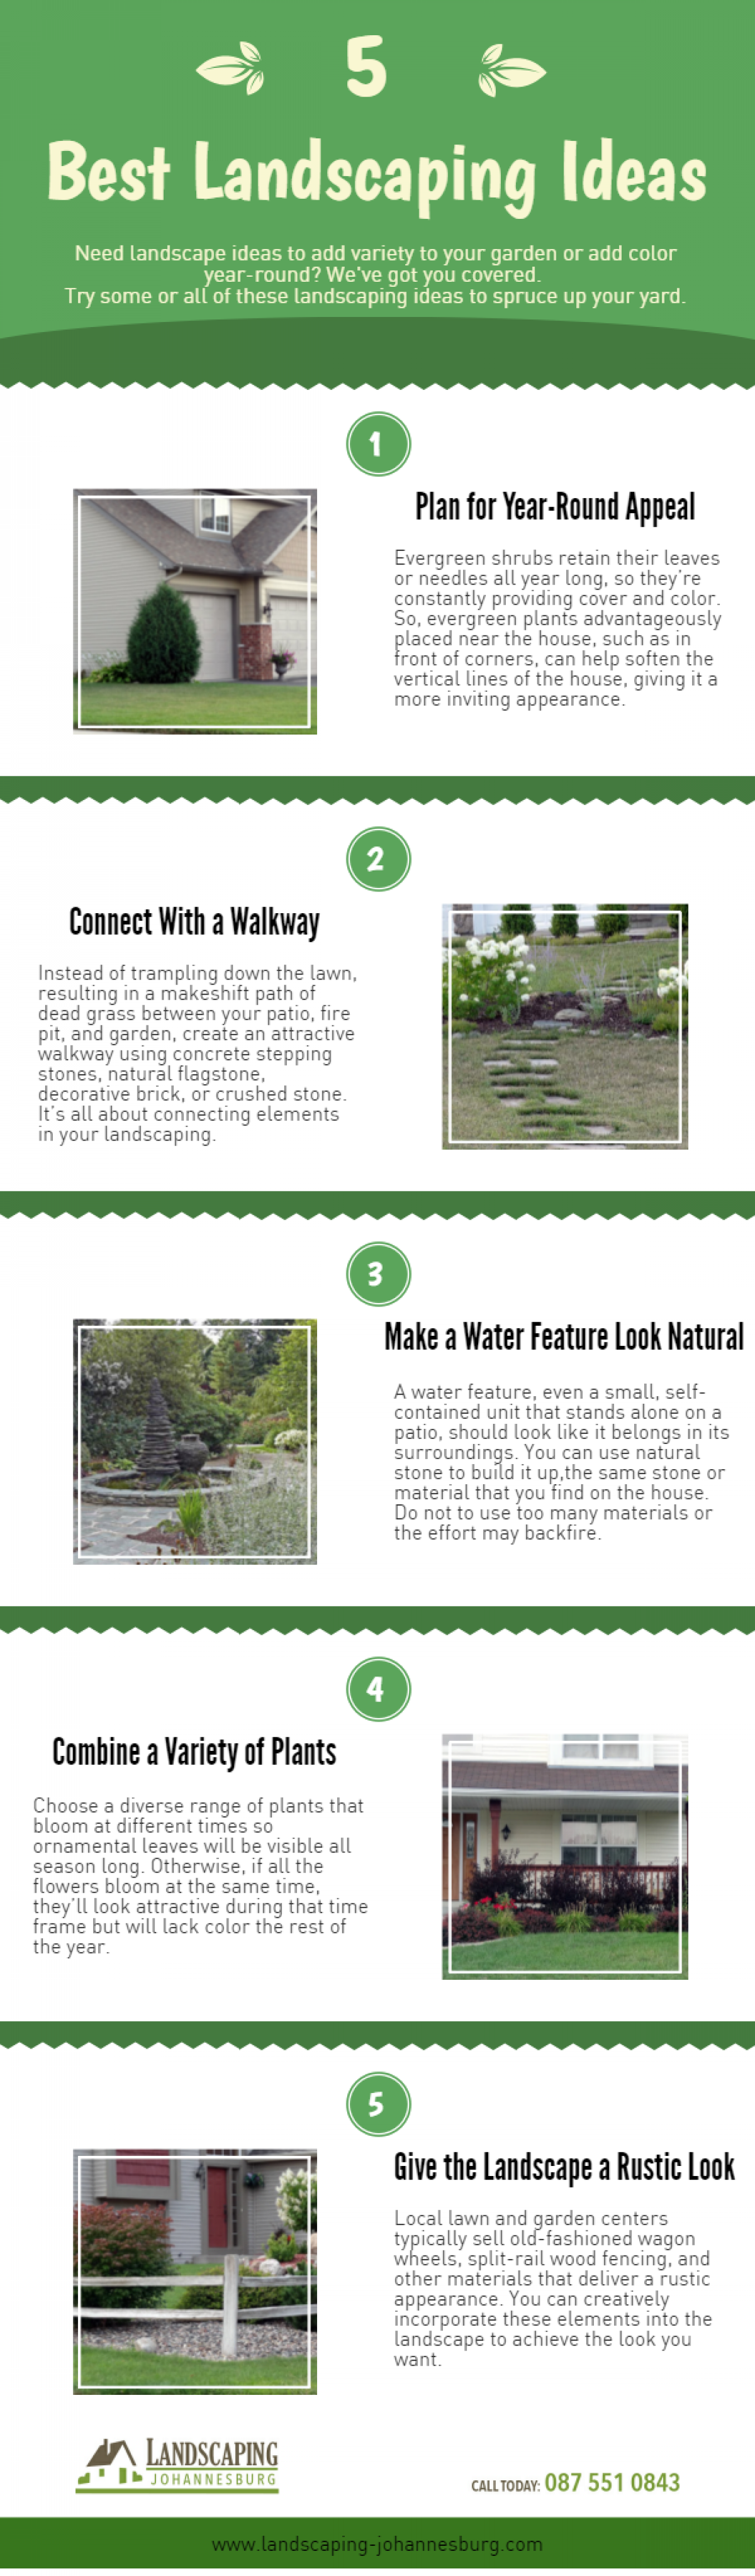 Invaluable landscaping tips Infographic